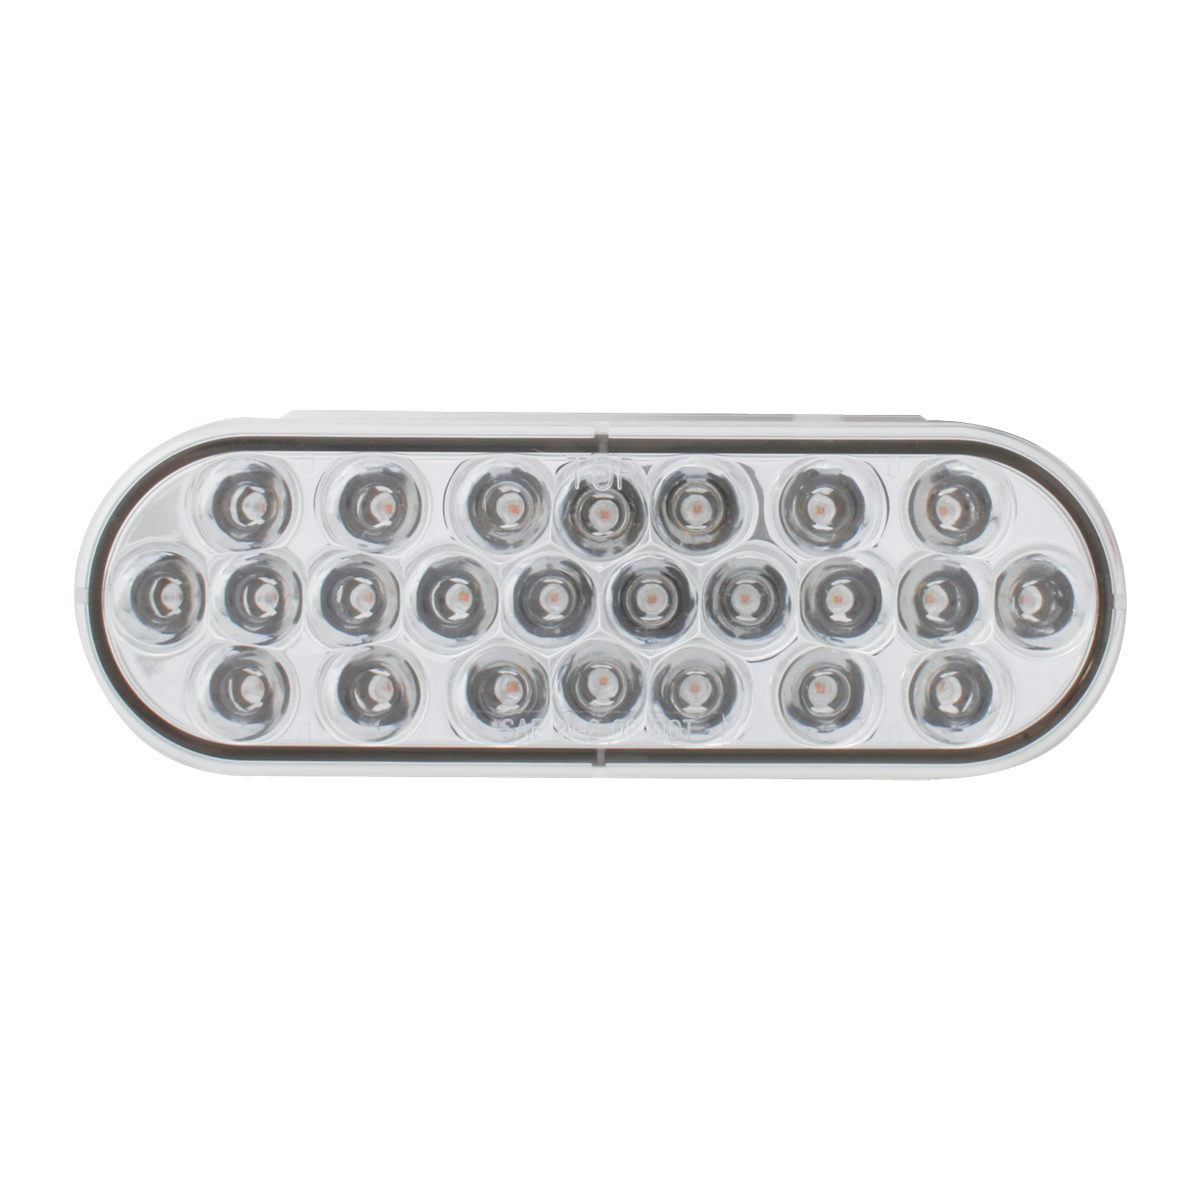 Oval Synchronous/Alternating Pearl LED Strobe Light in Clear Lens